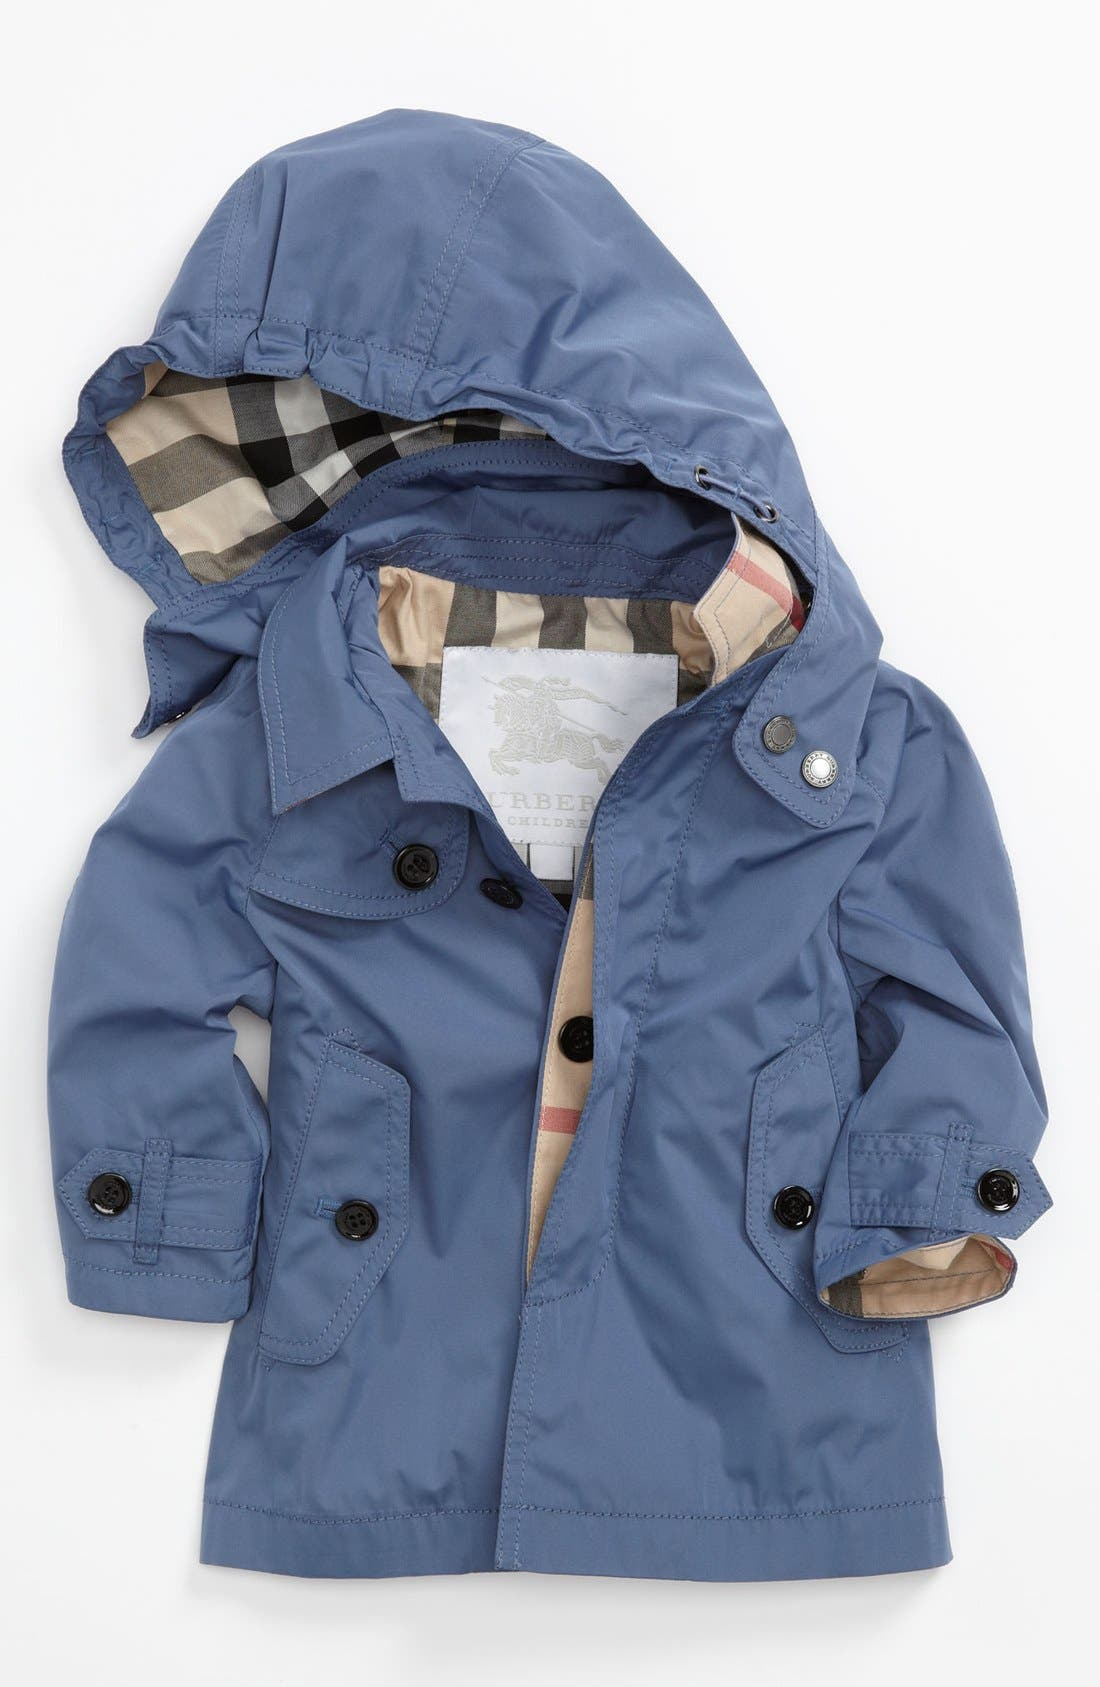 Alternate Image 1 Selected - Burberry 'River' Coat (Baby Boys)